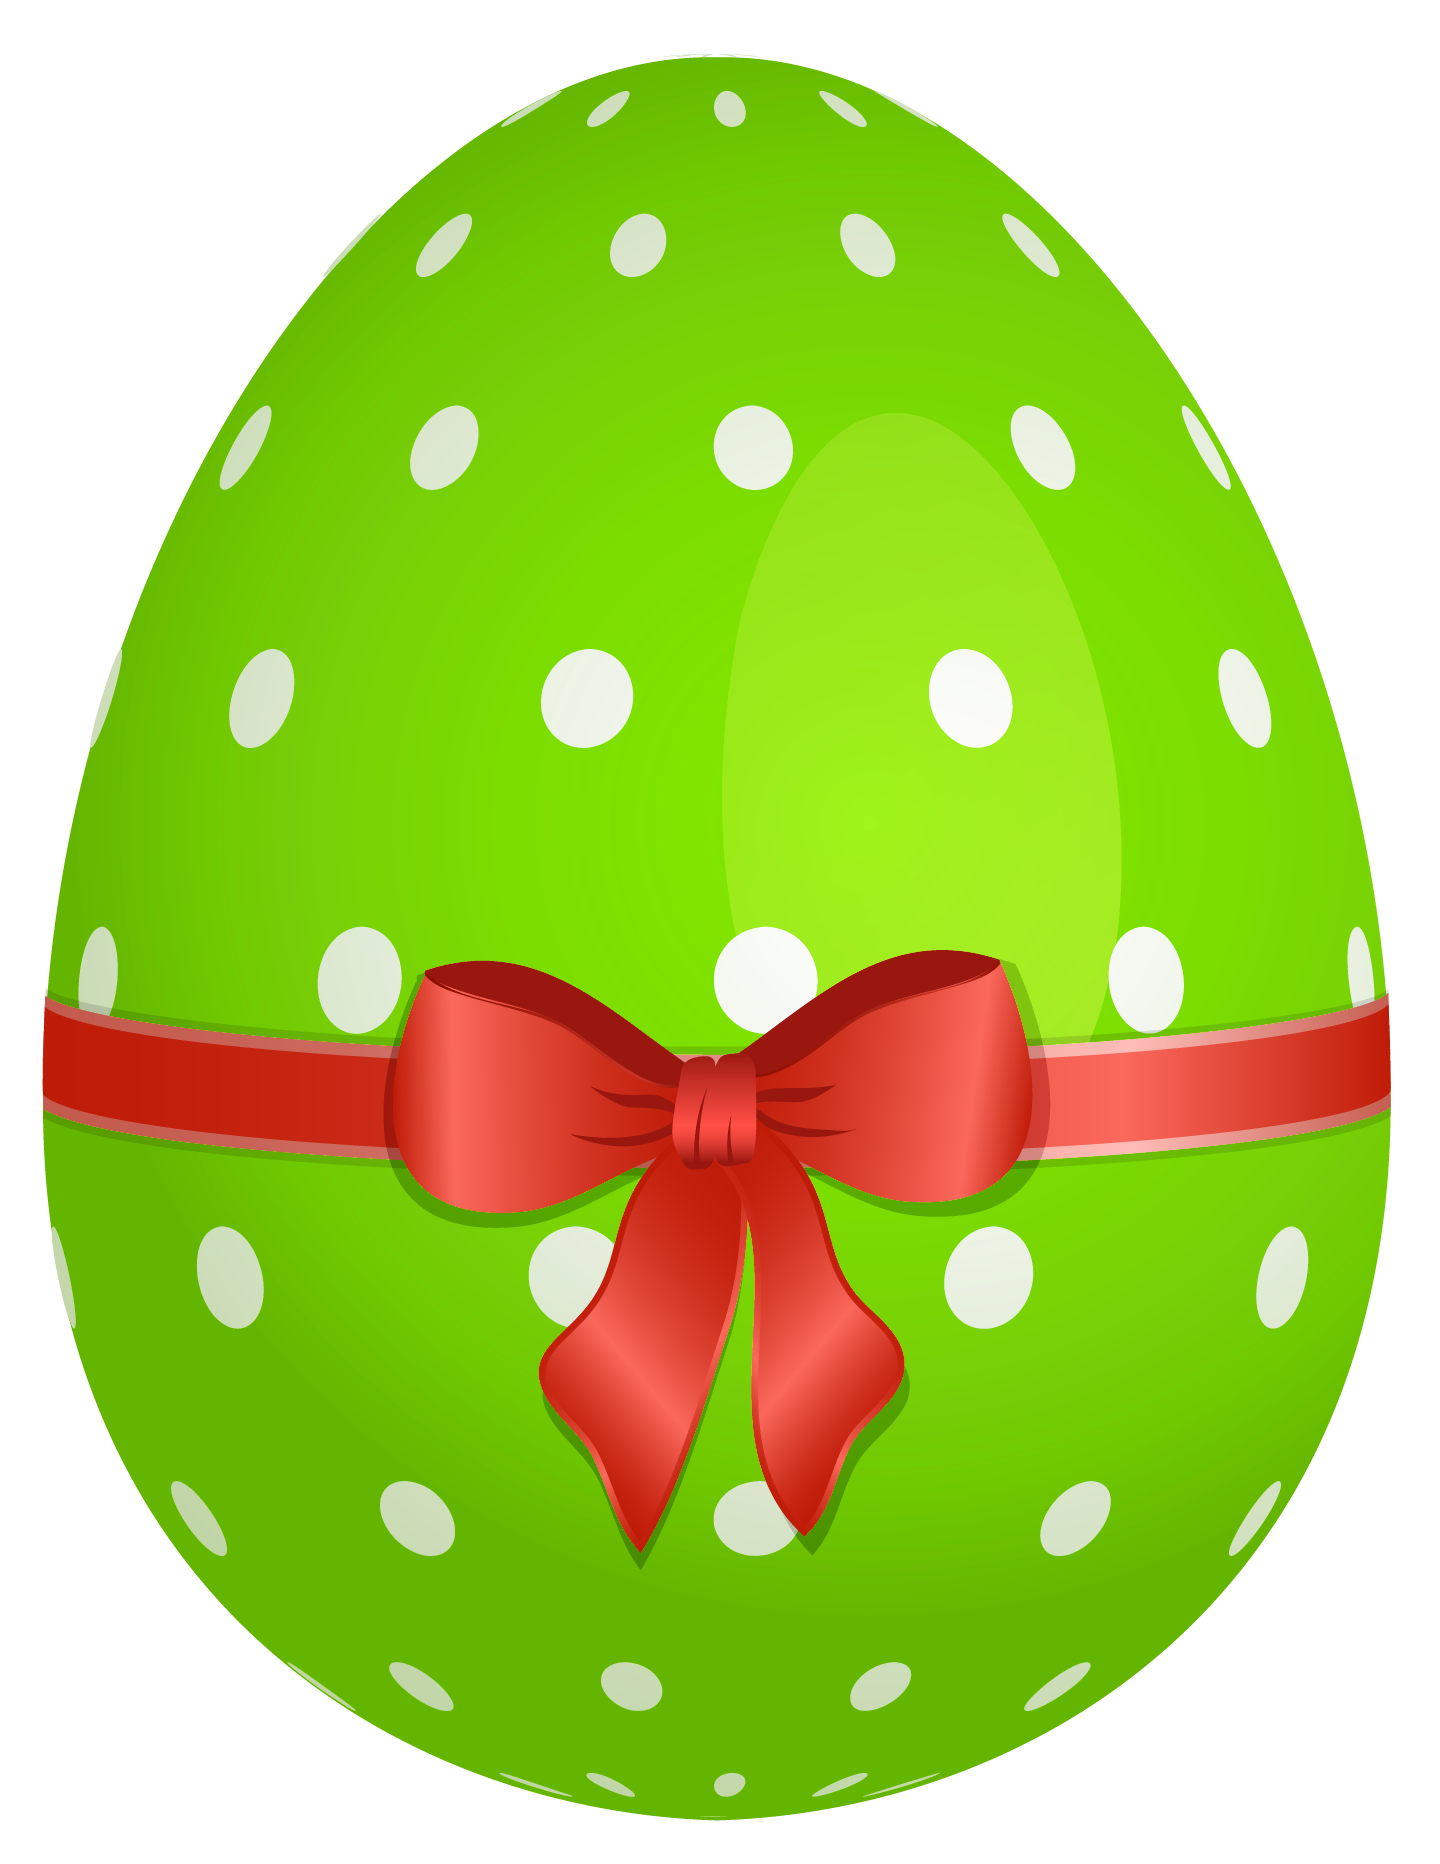 Easter Bunny Clipart Microsoft.